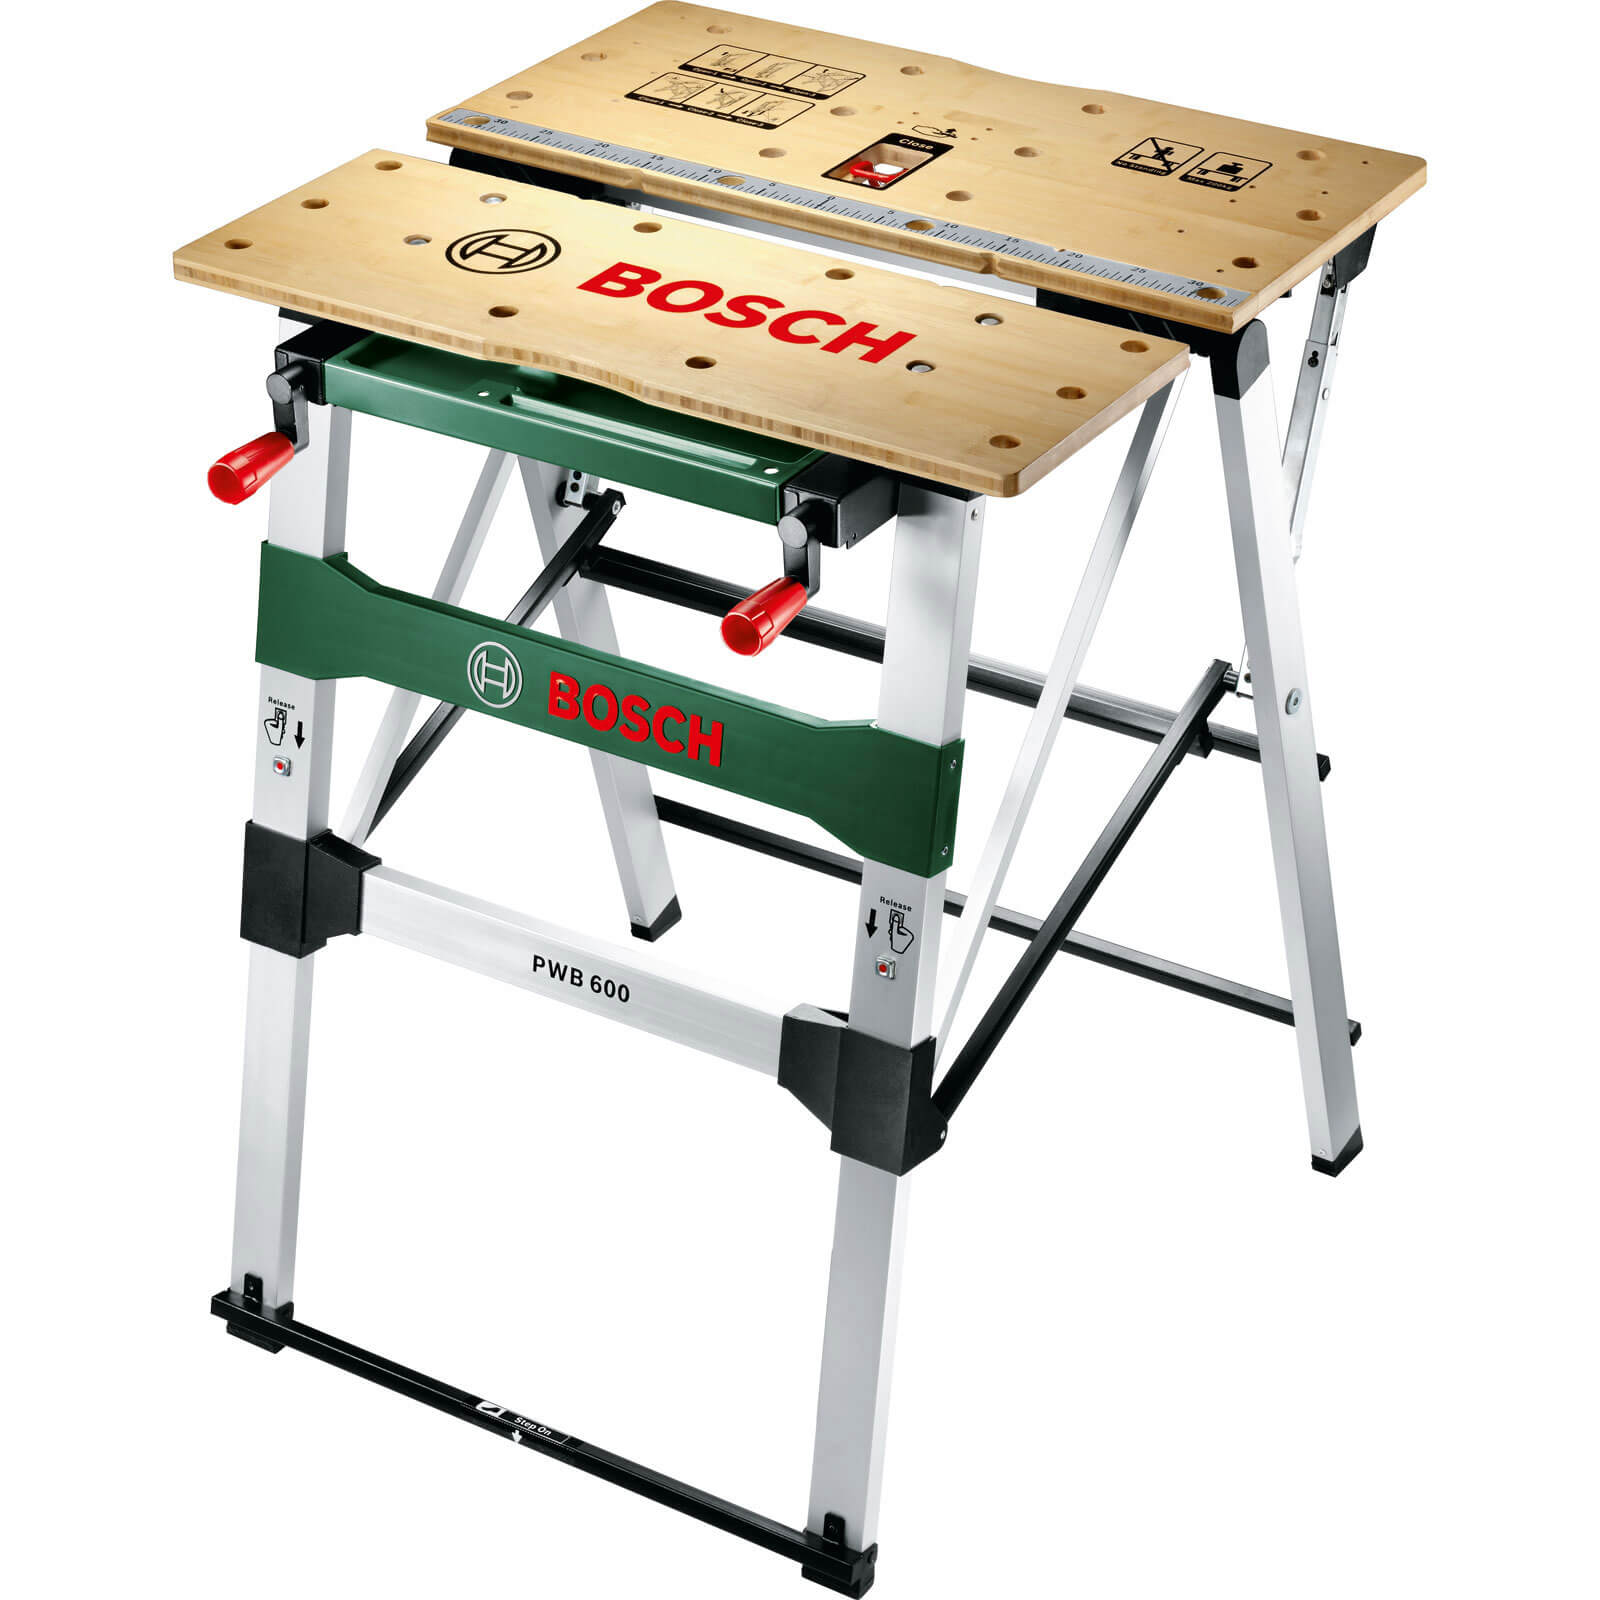 Buy Cheap Folding Work Bench Compare Hand Tools Prices For Best Uk Deals